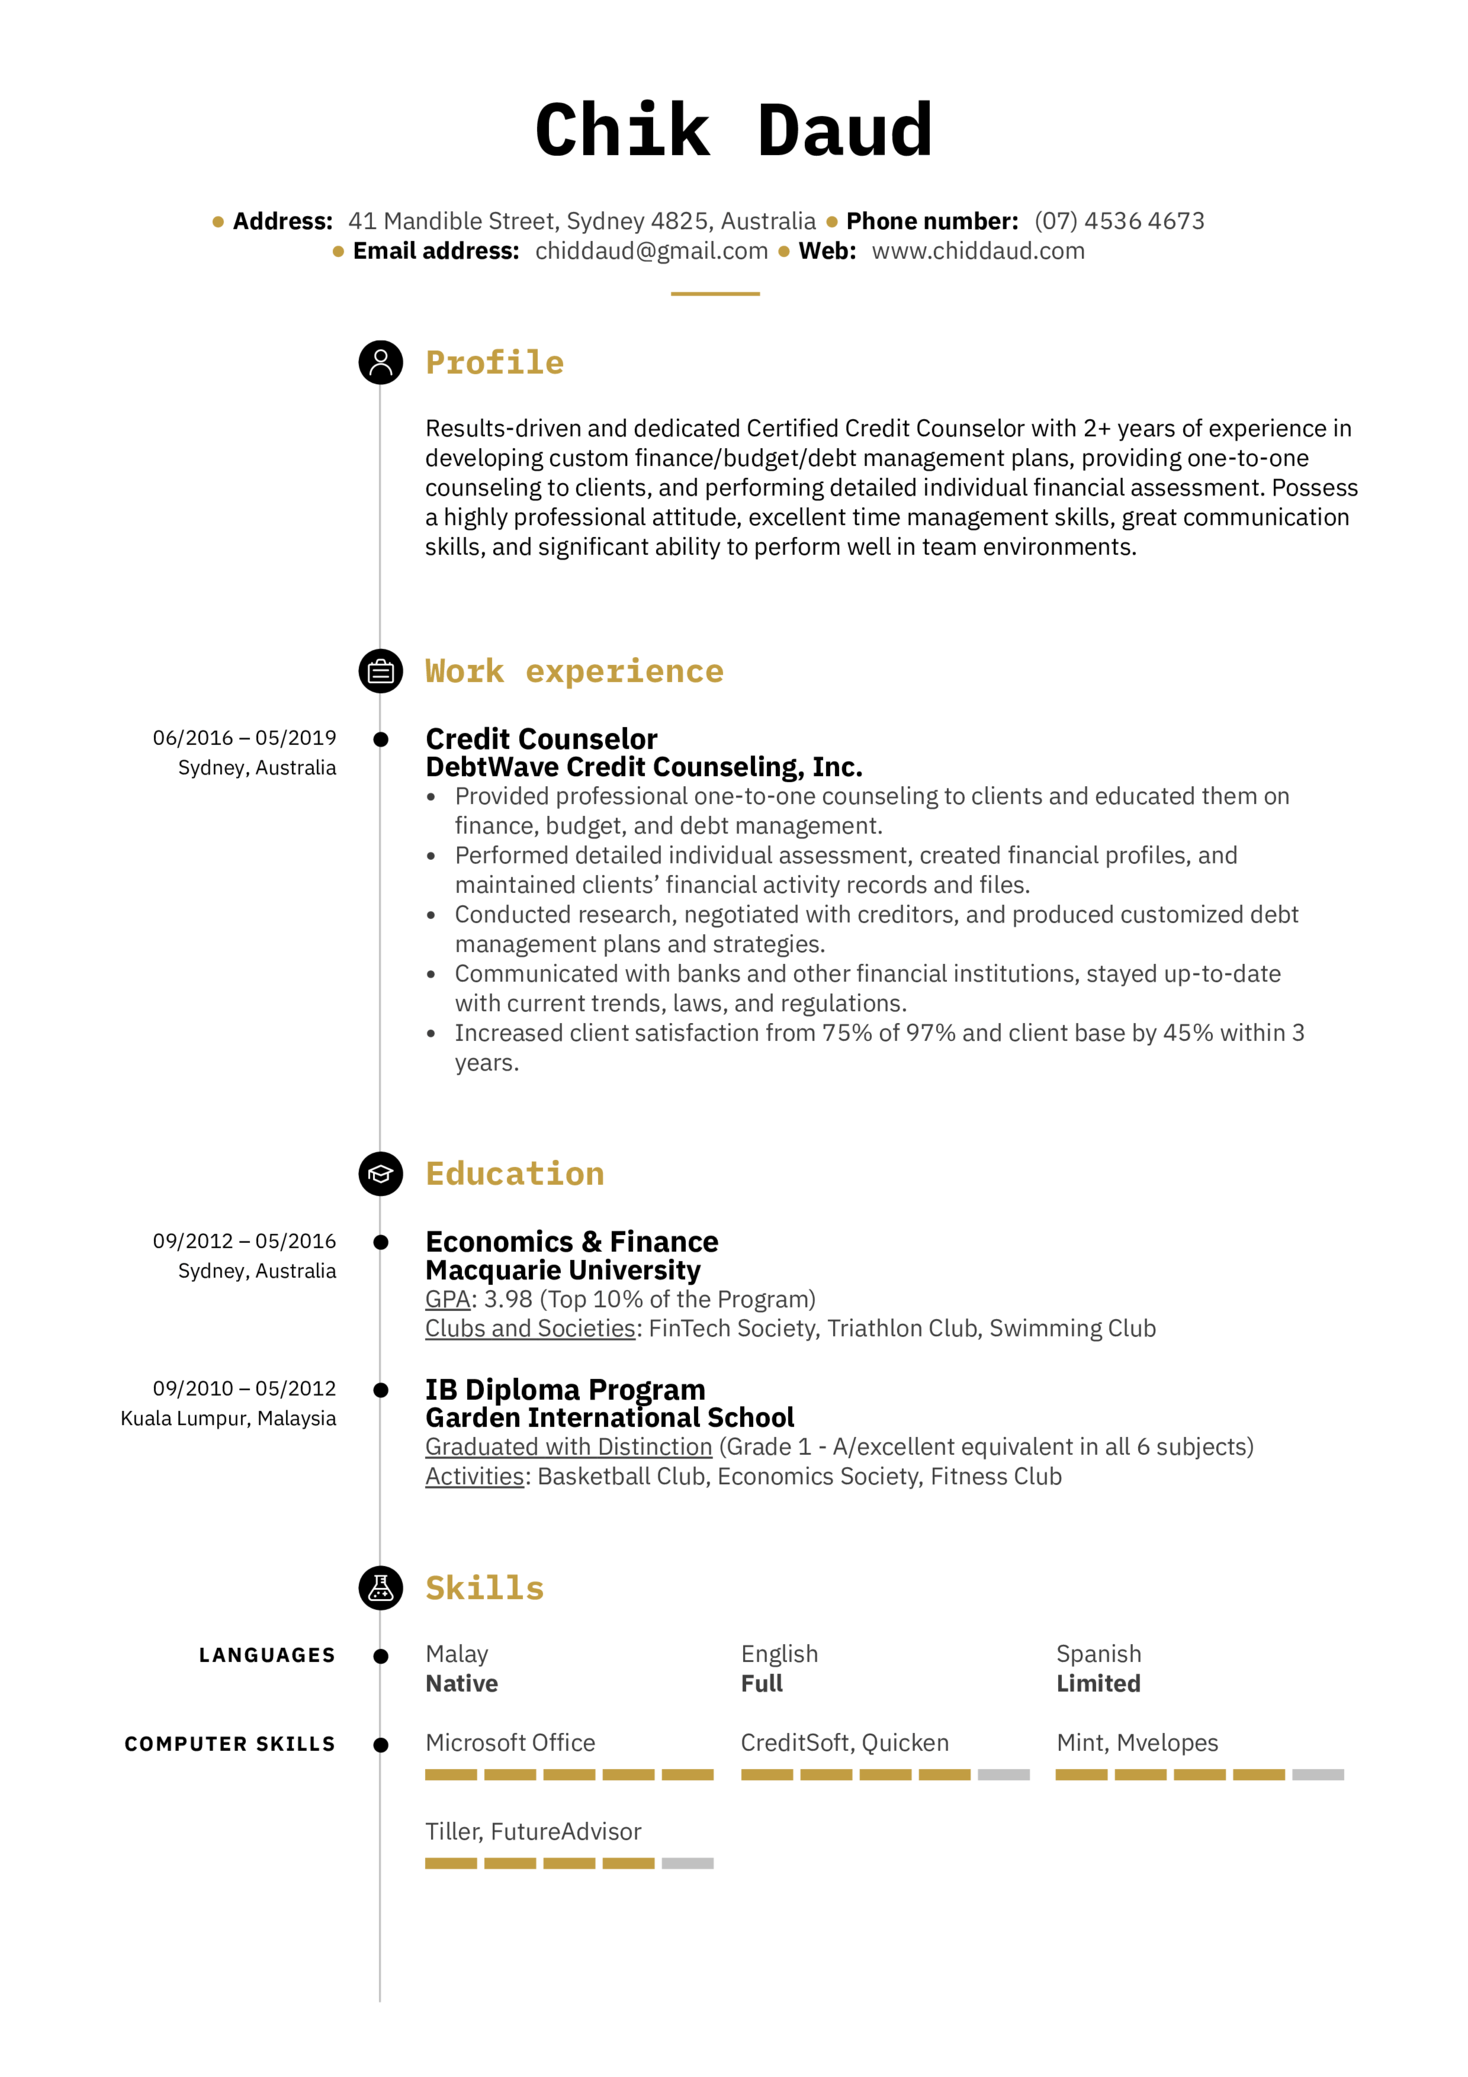 Credit Counselor Resume Example (Teil 1)